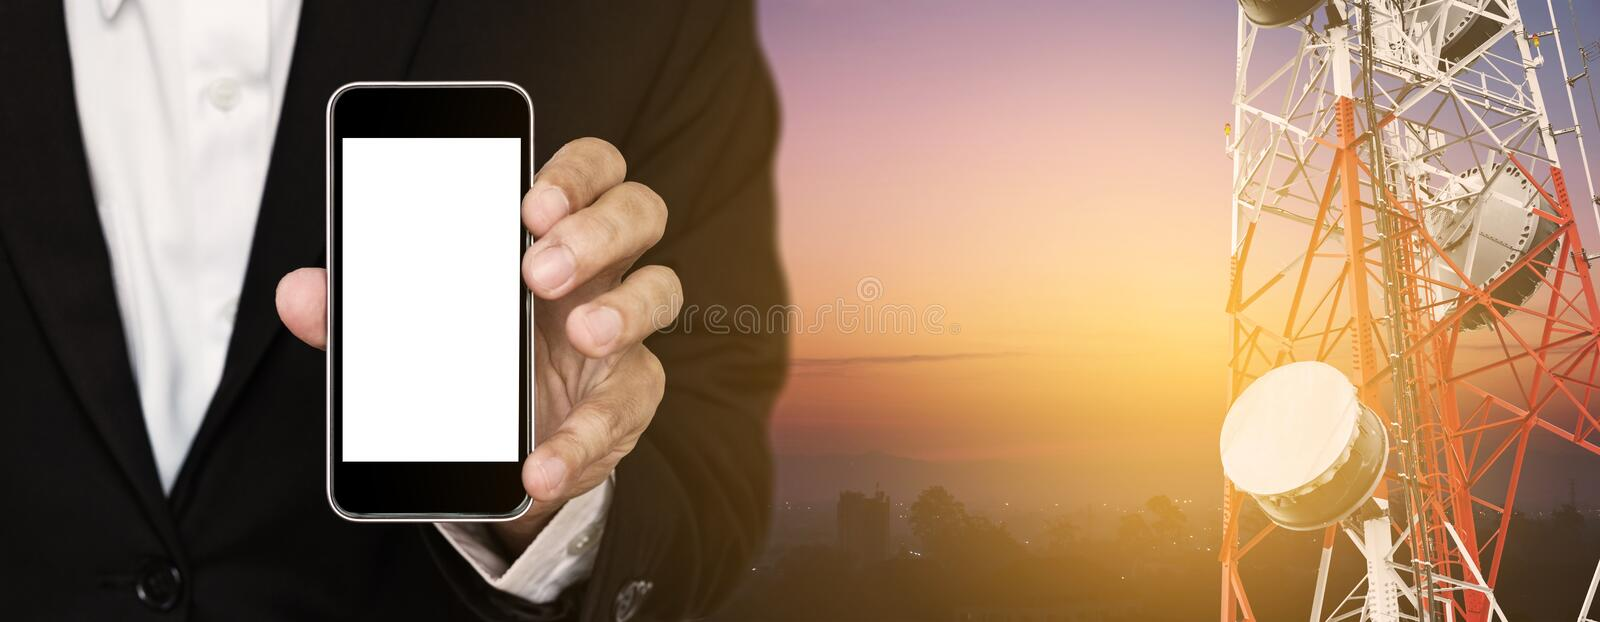 Mobile phone in businessman's hand, with satellite dish telecom network on telecommunication tower at sunrise stock photography